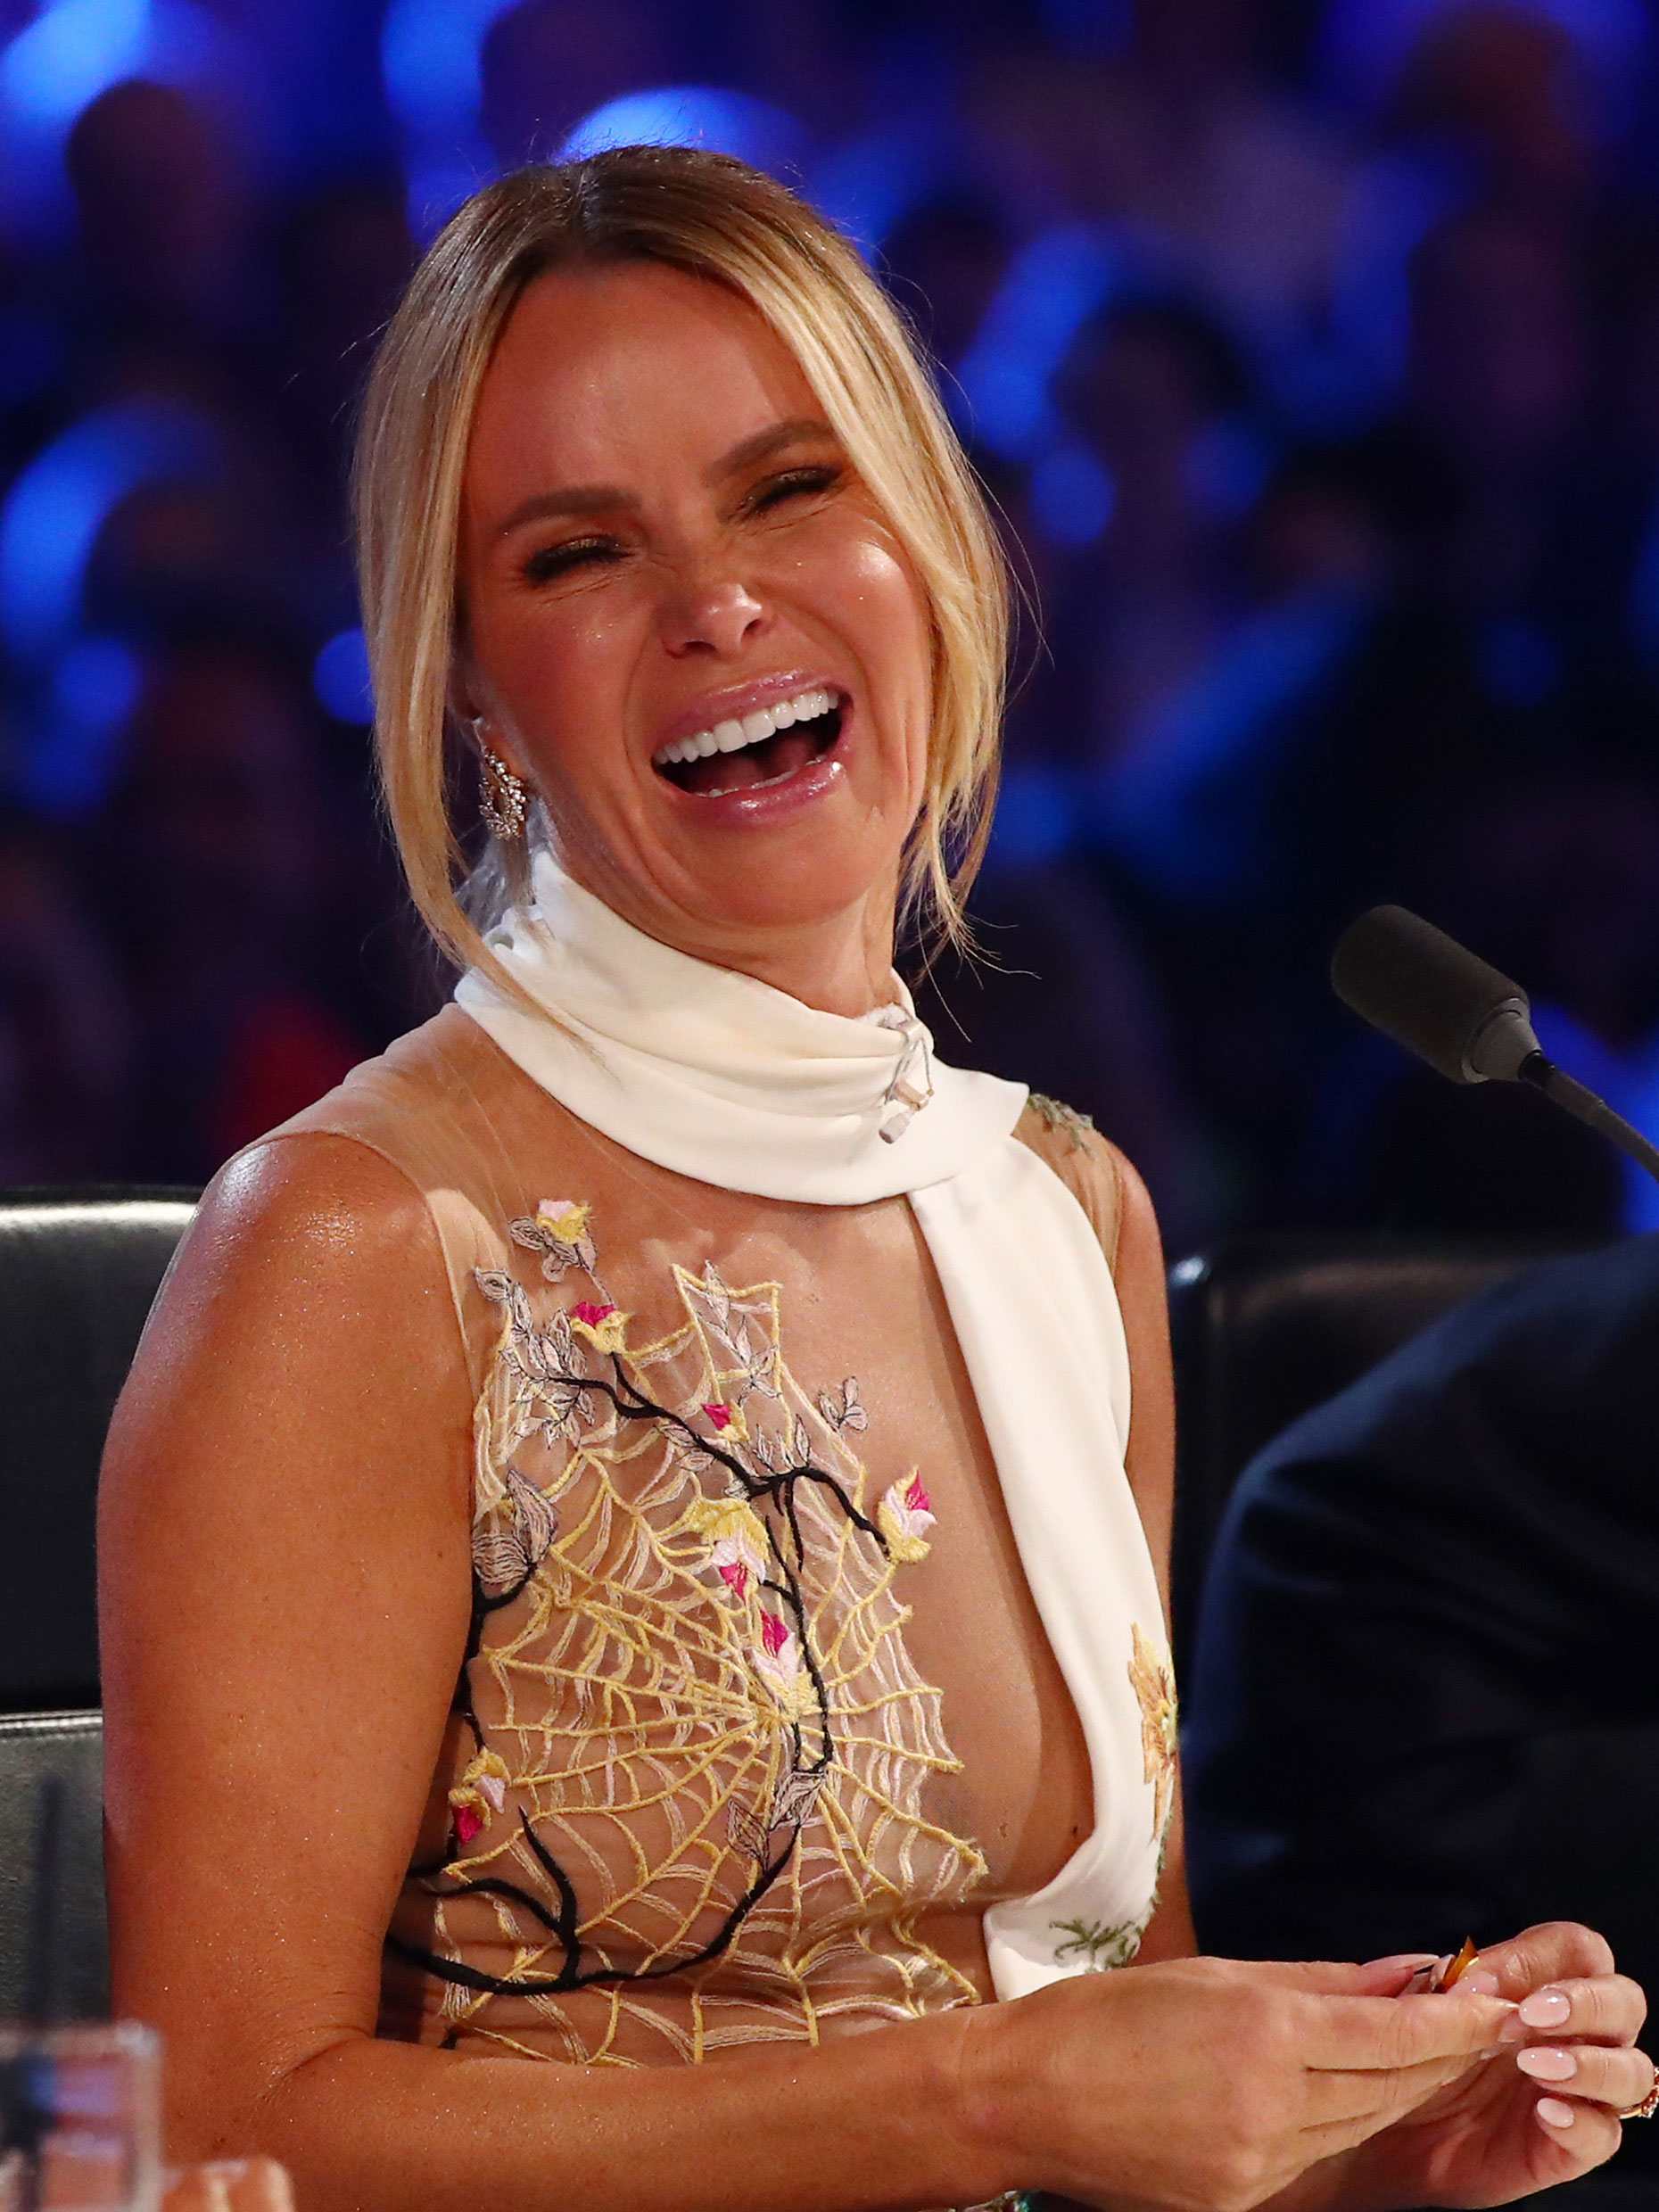 Amanda Holden Nude amanda holden delighted people are discussing her tired old